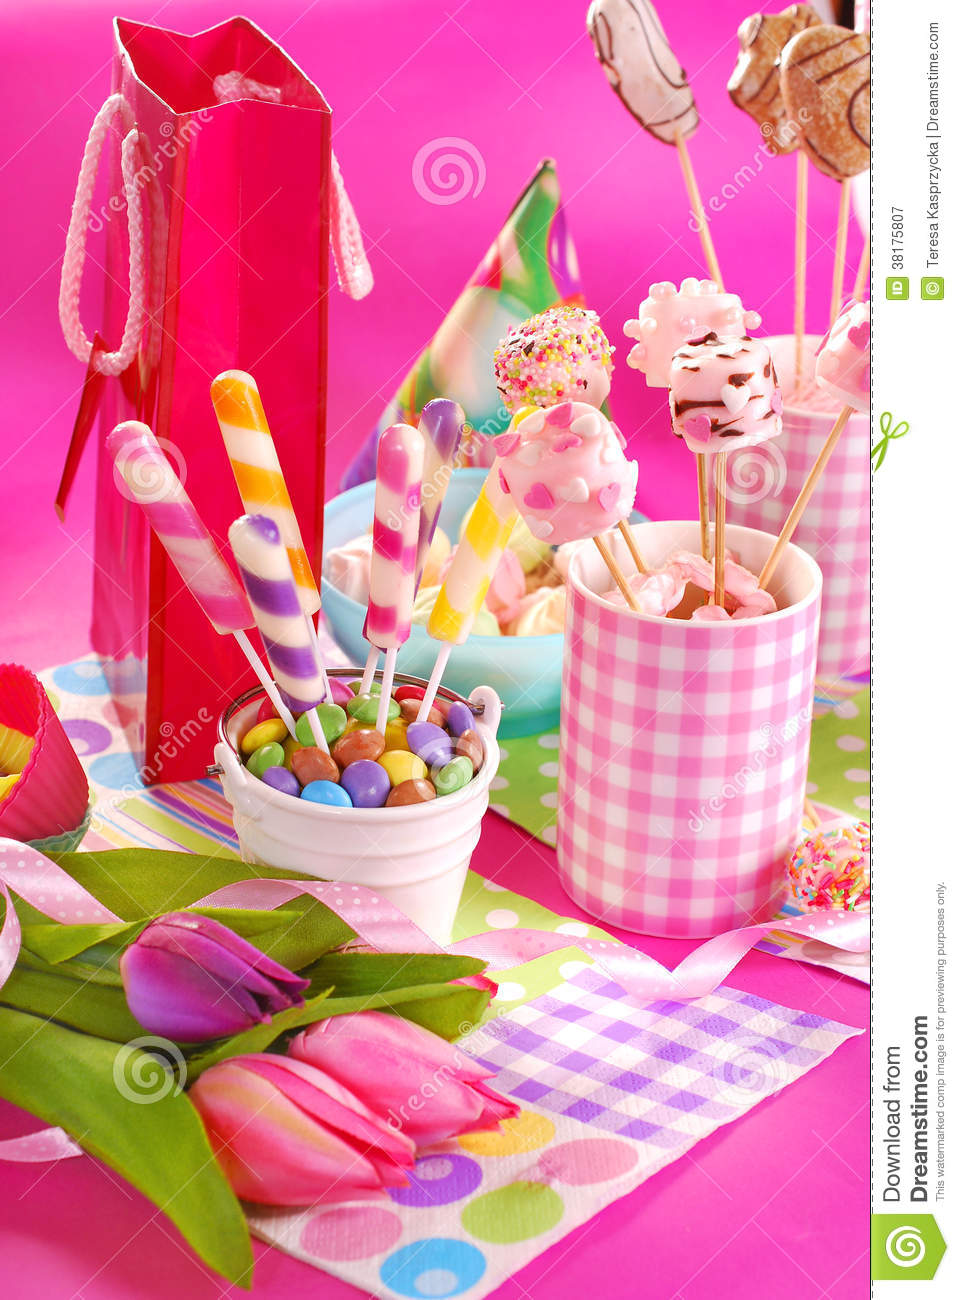 Birthday Party Table With Flowers And Sweets For Kids Stock Image